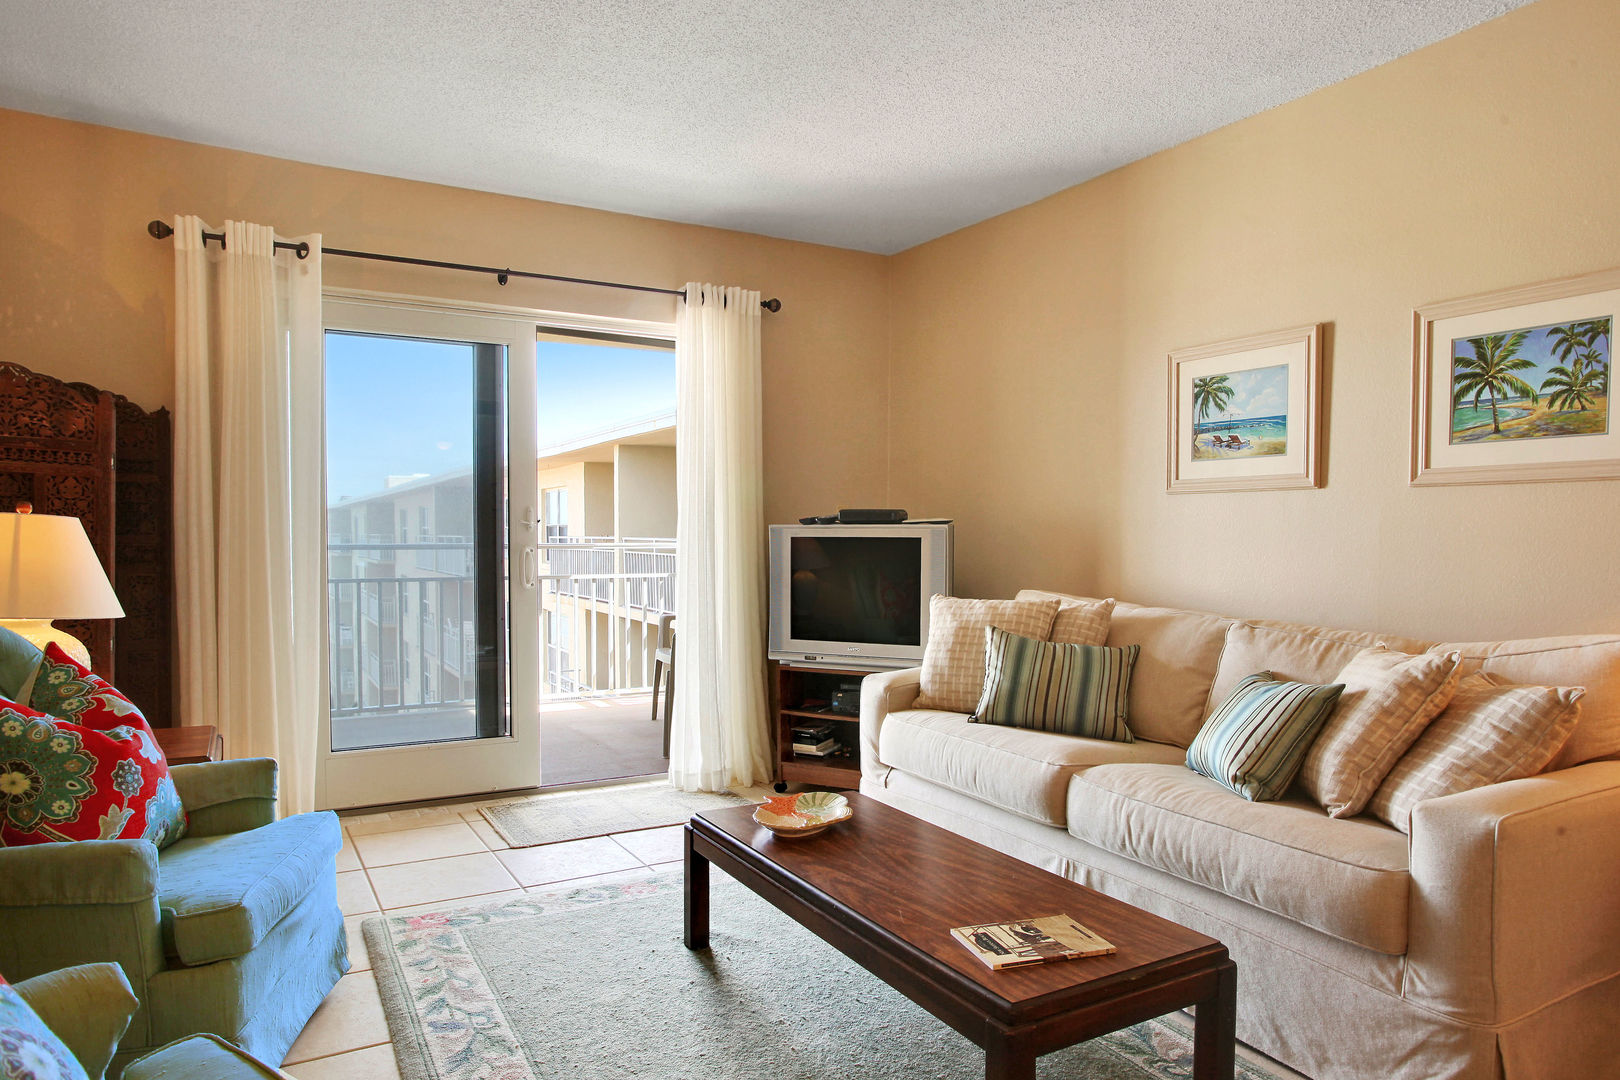 New Smyrna vacation rental with 1 bedroom and ocean views